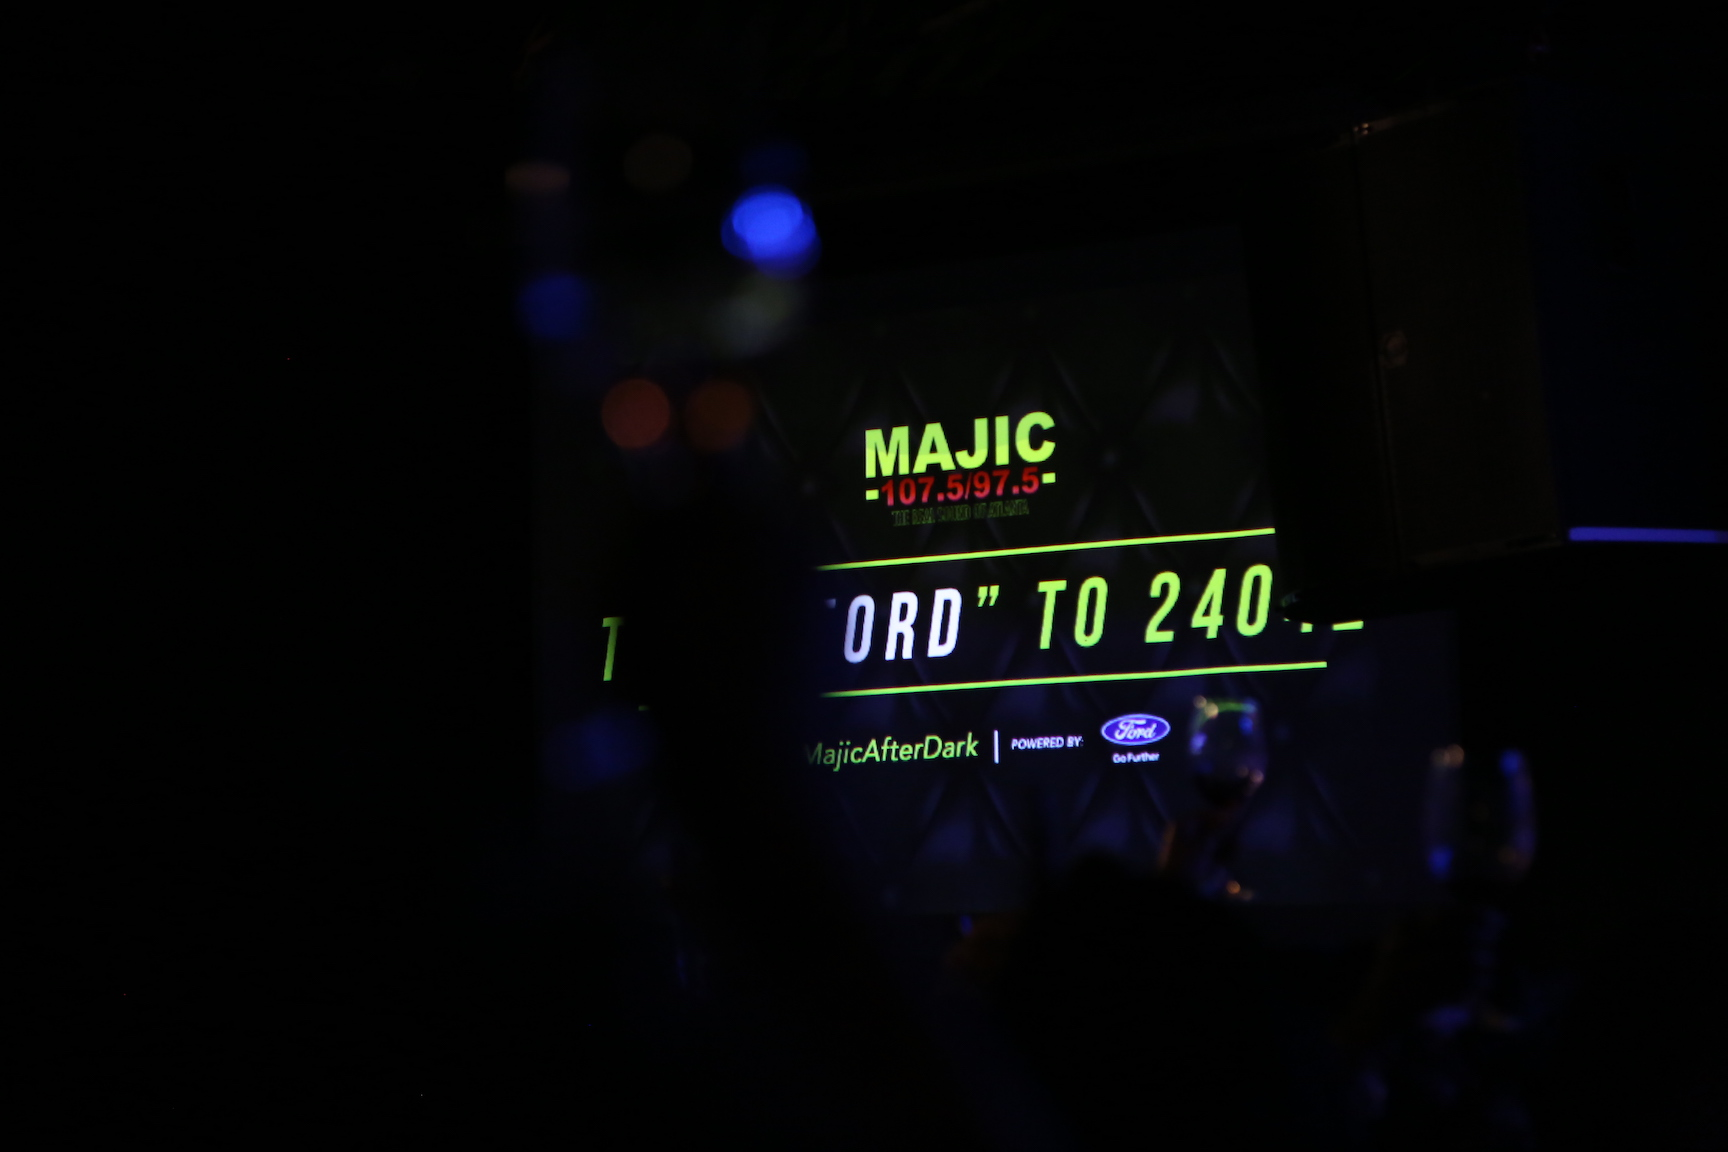 Majic After Dark Powered By Ford Case